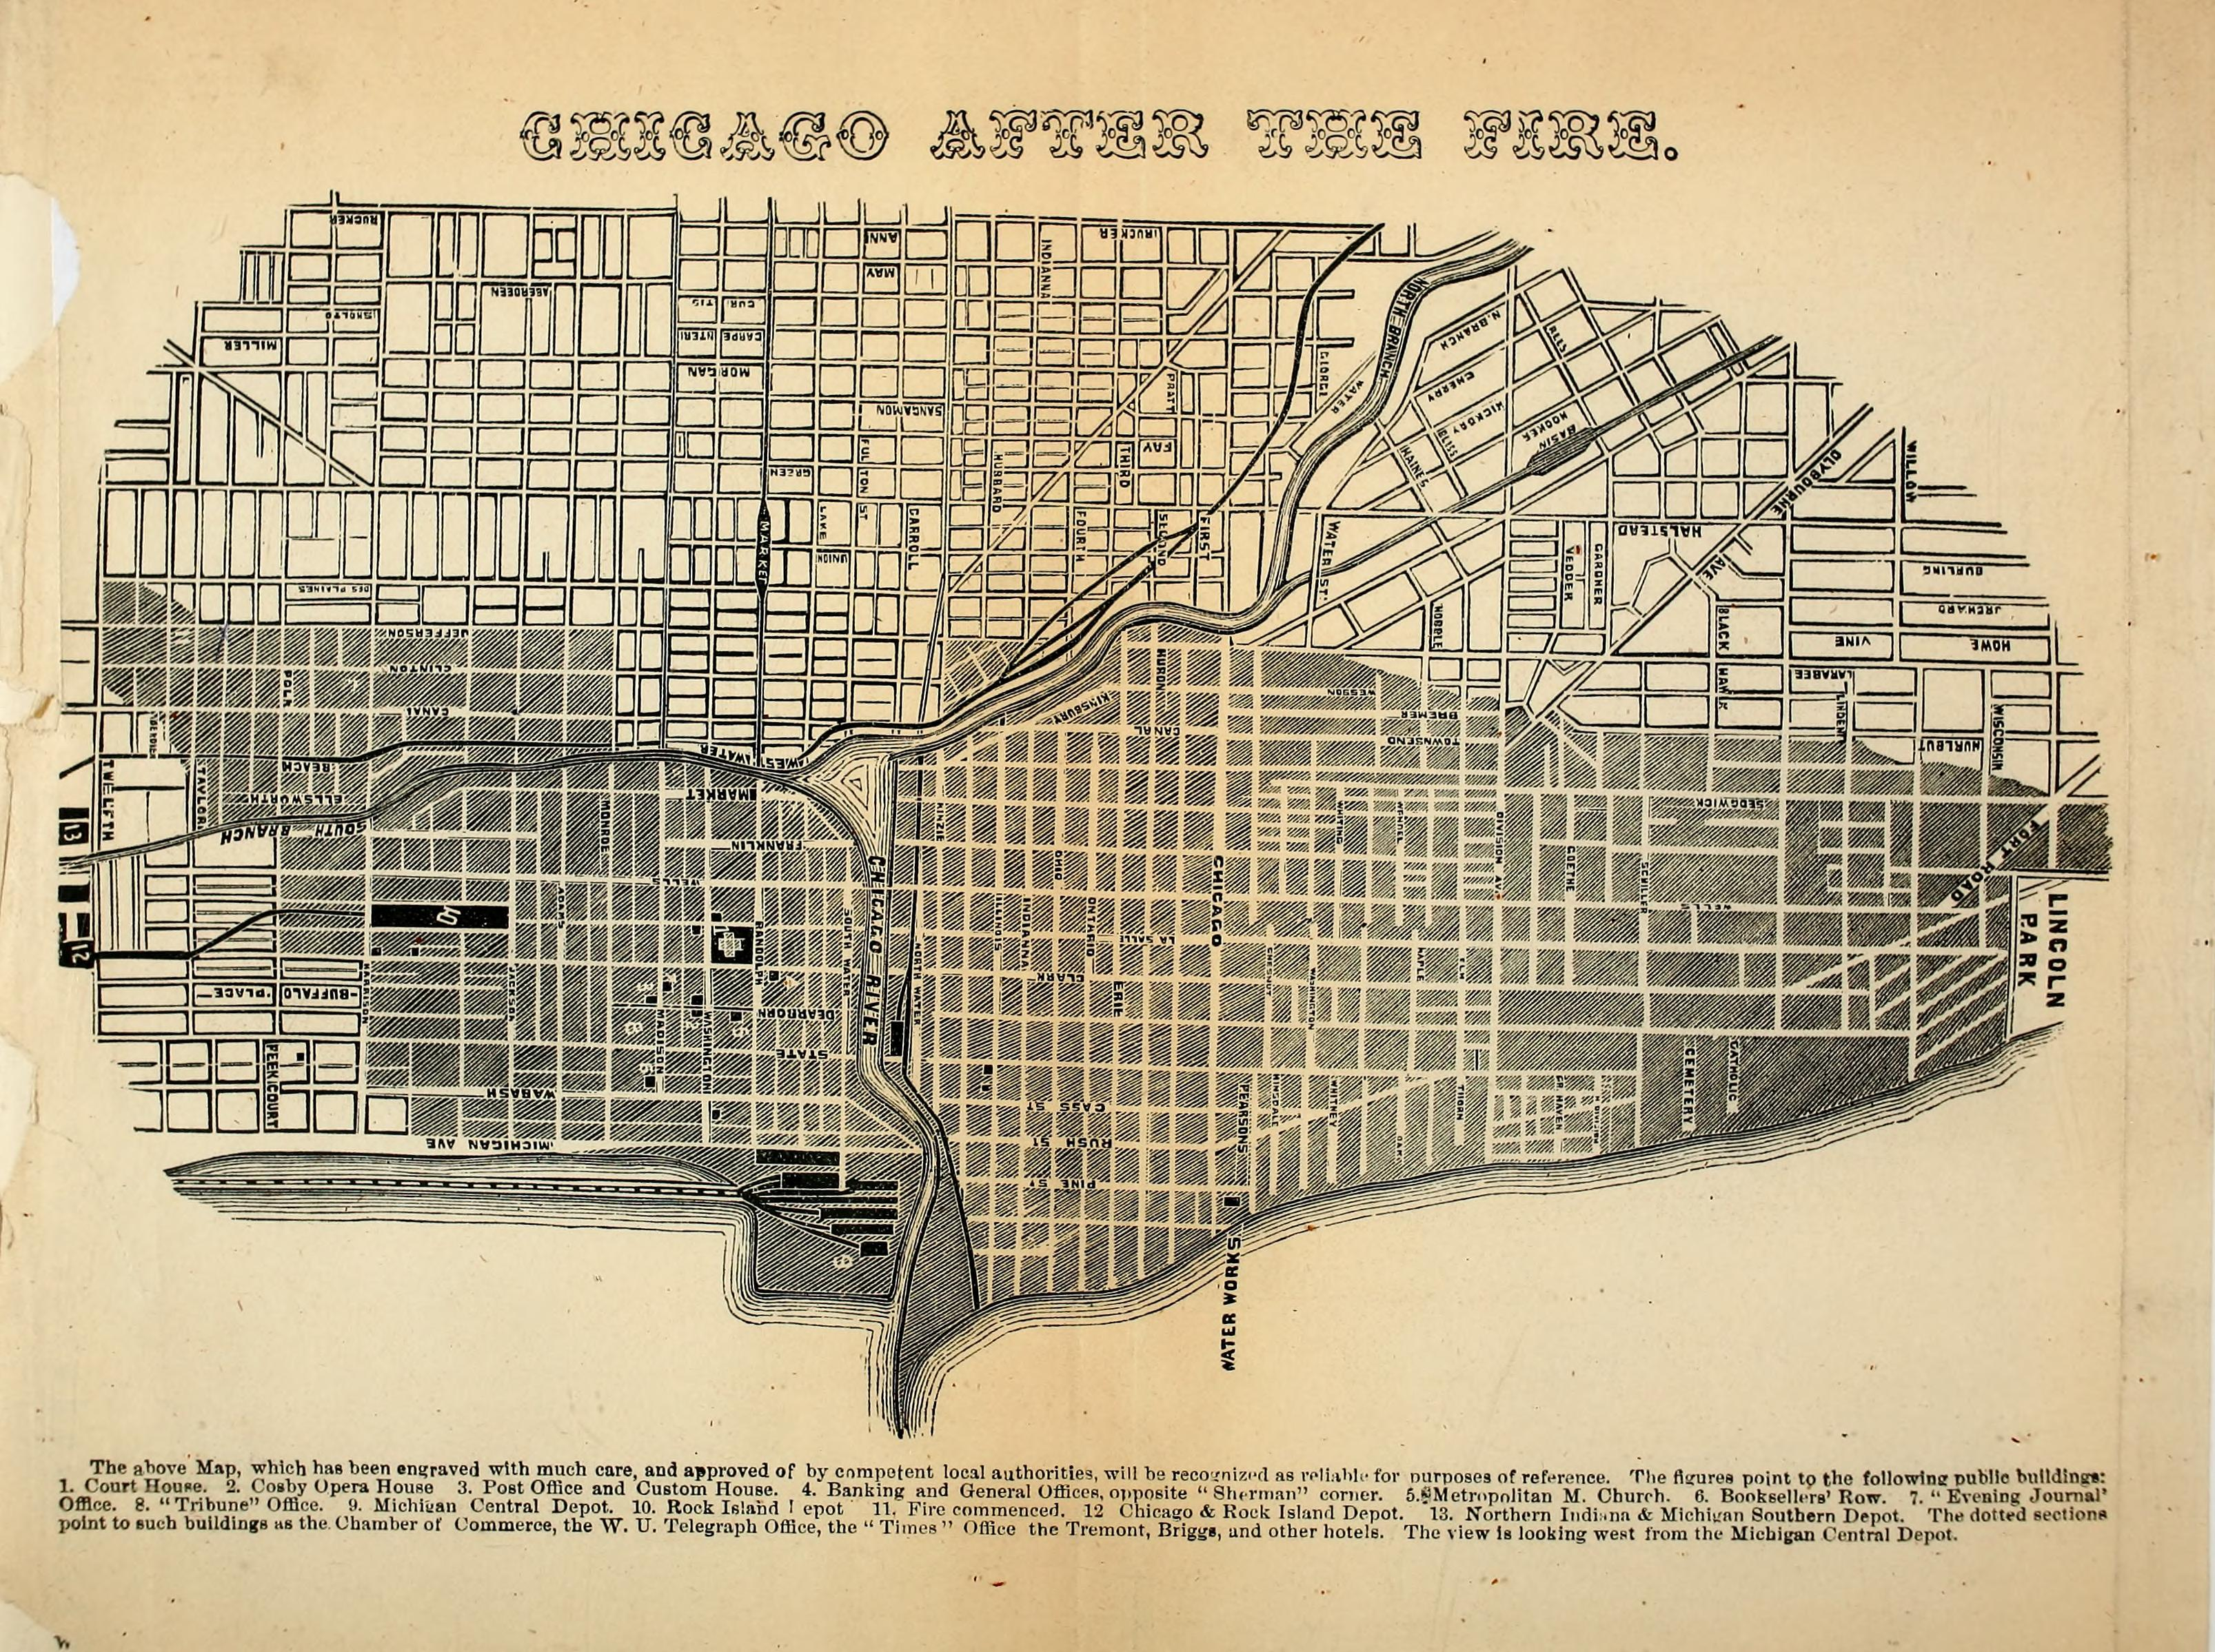 Chicago Fire - Detail of Burnt District